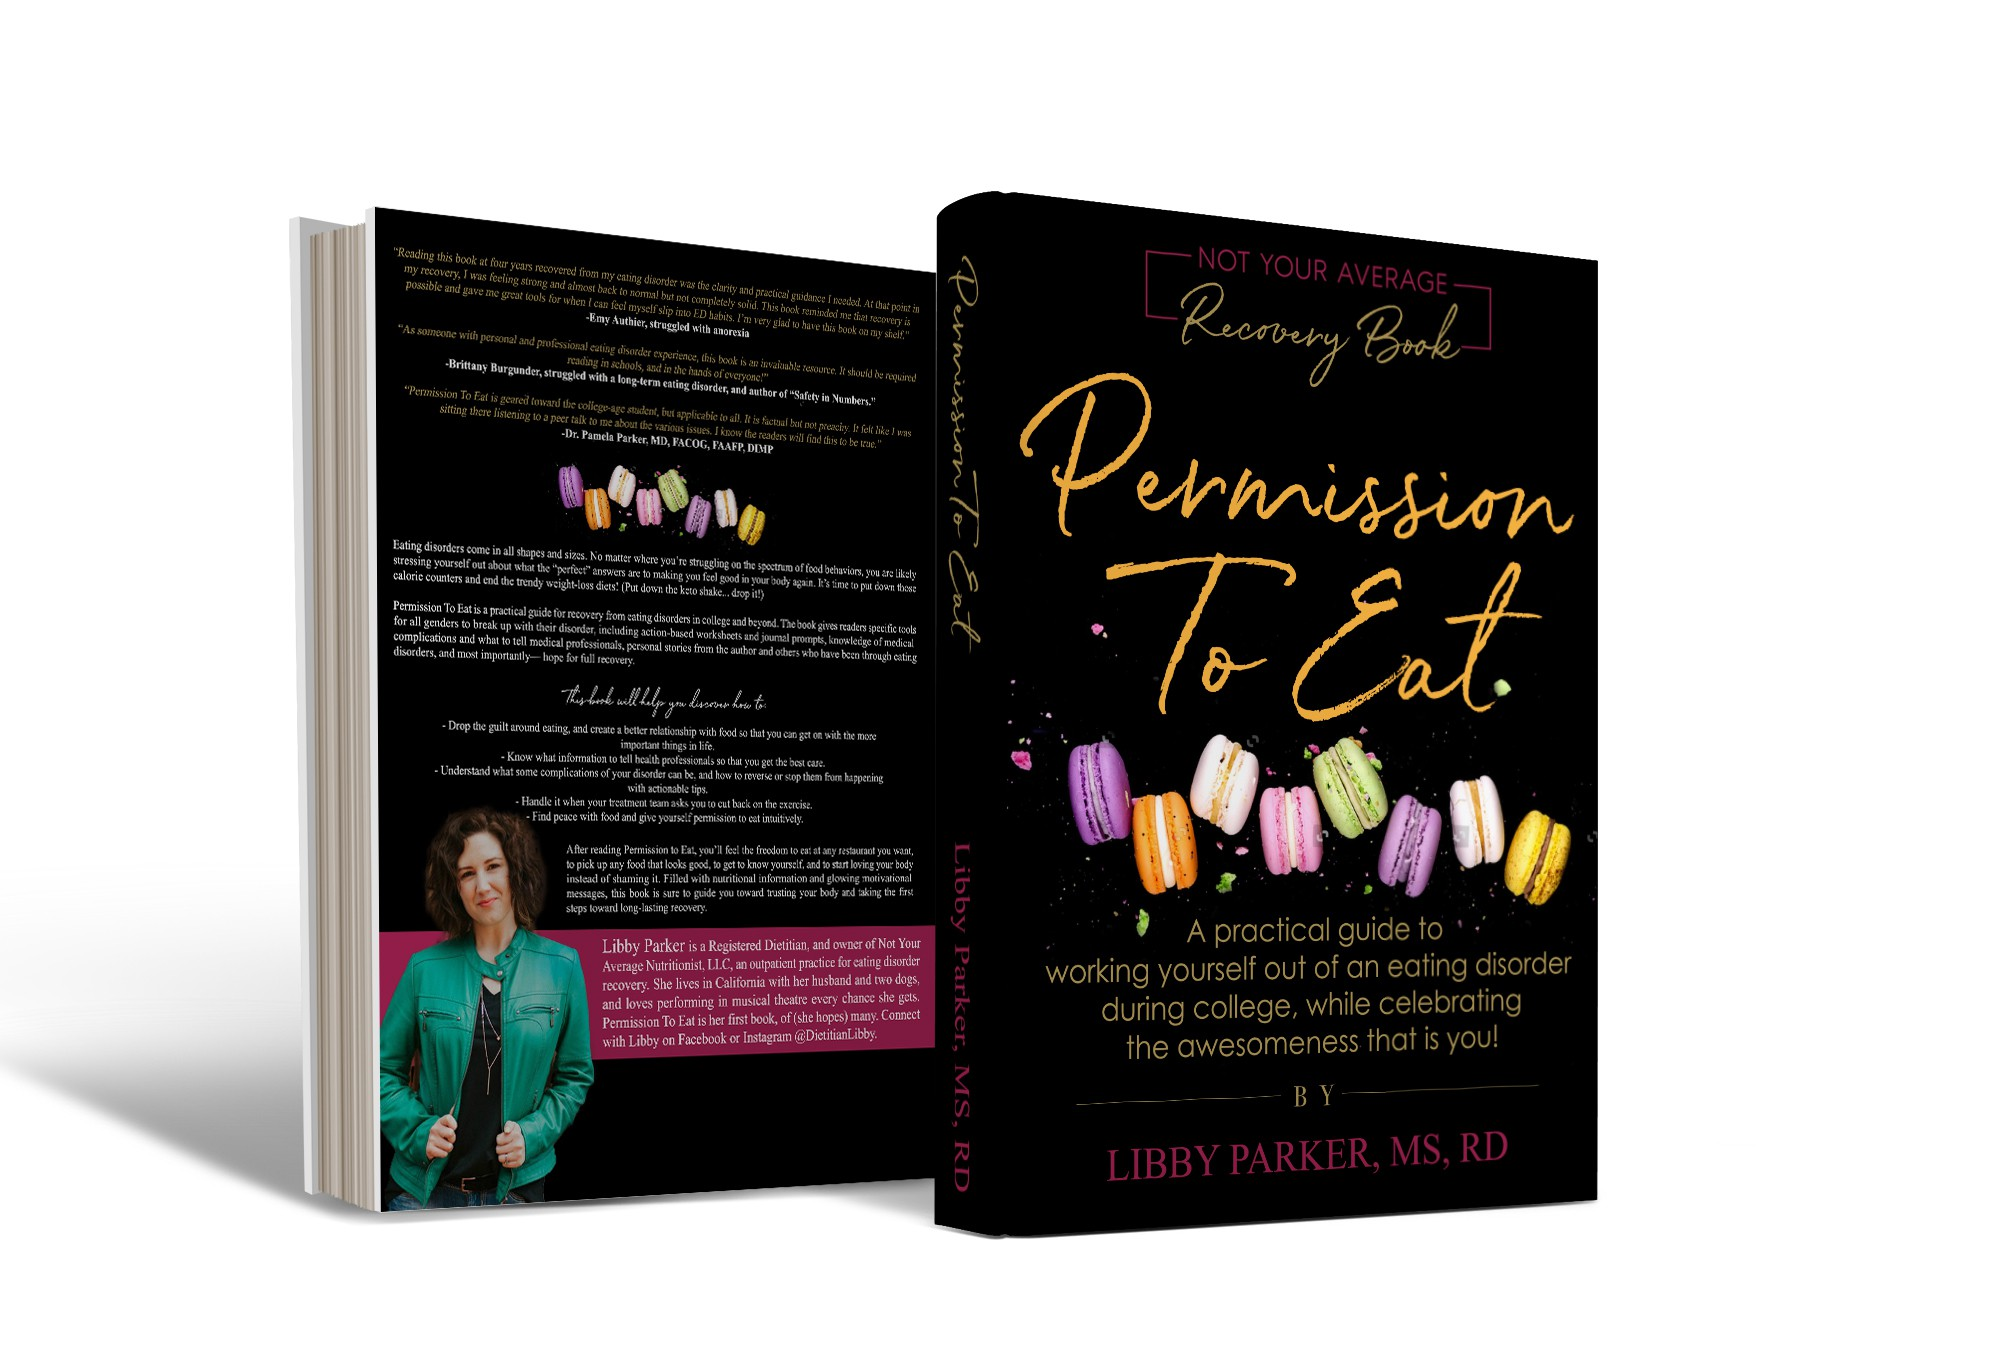 Cover for book on recovering from eating disorders in college and beyond